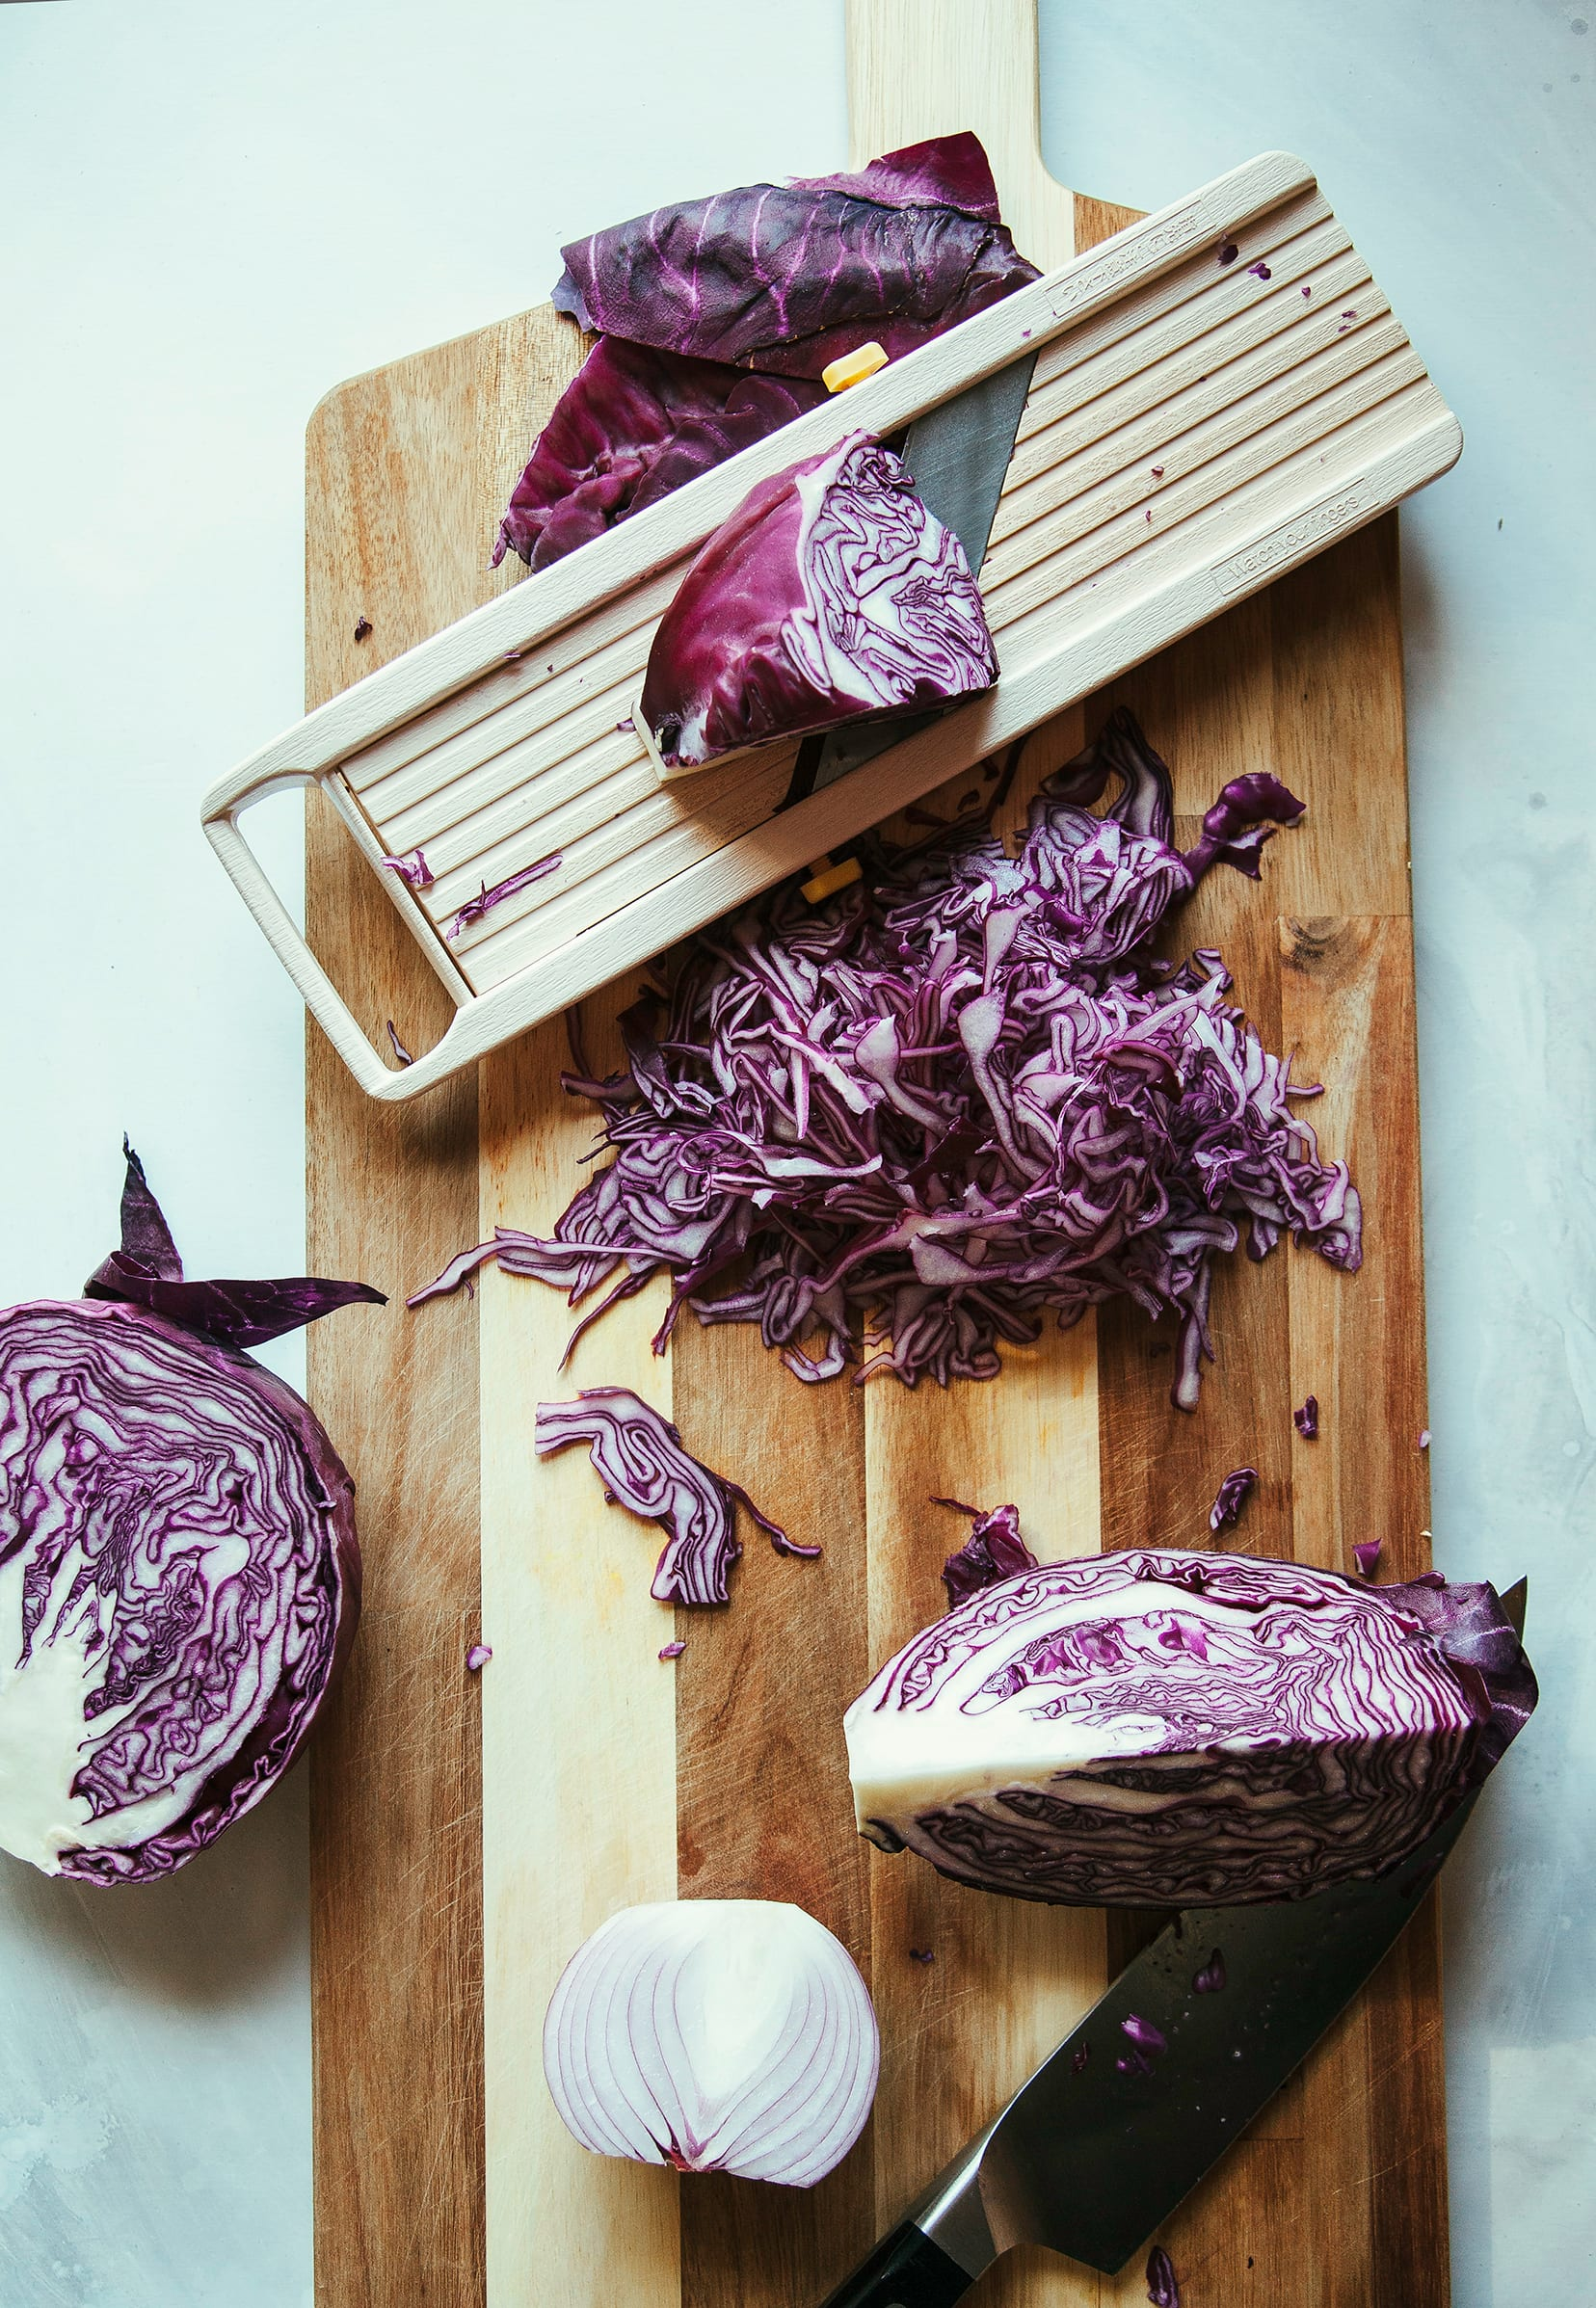 Overhead image of red cabbage being shredded with a mandolin over a wood cutting board.